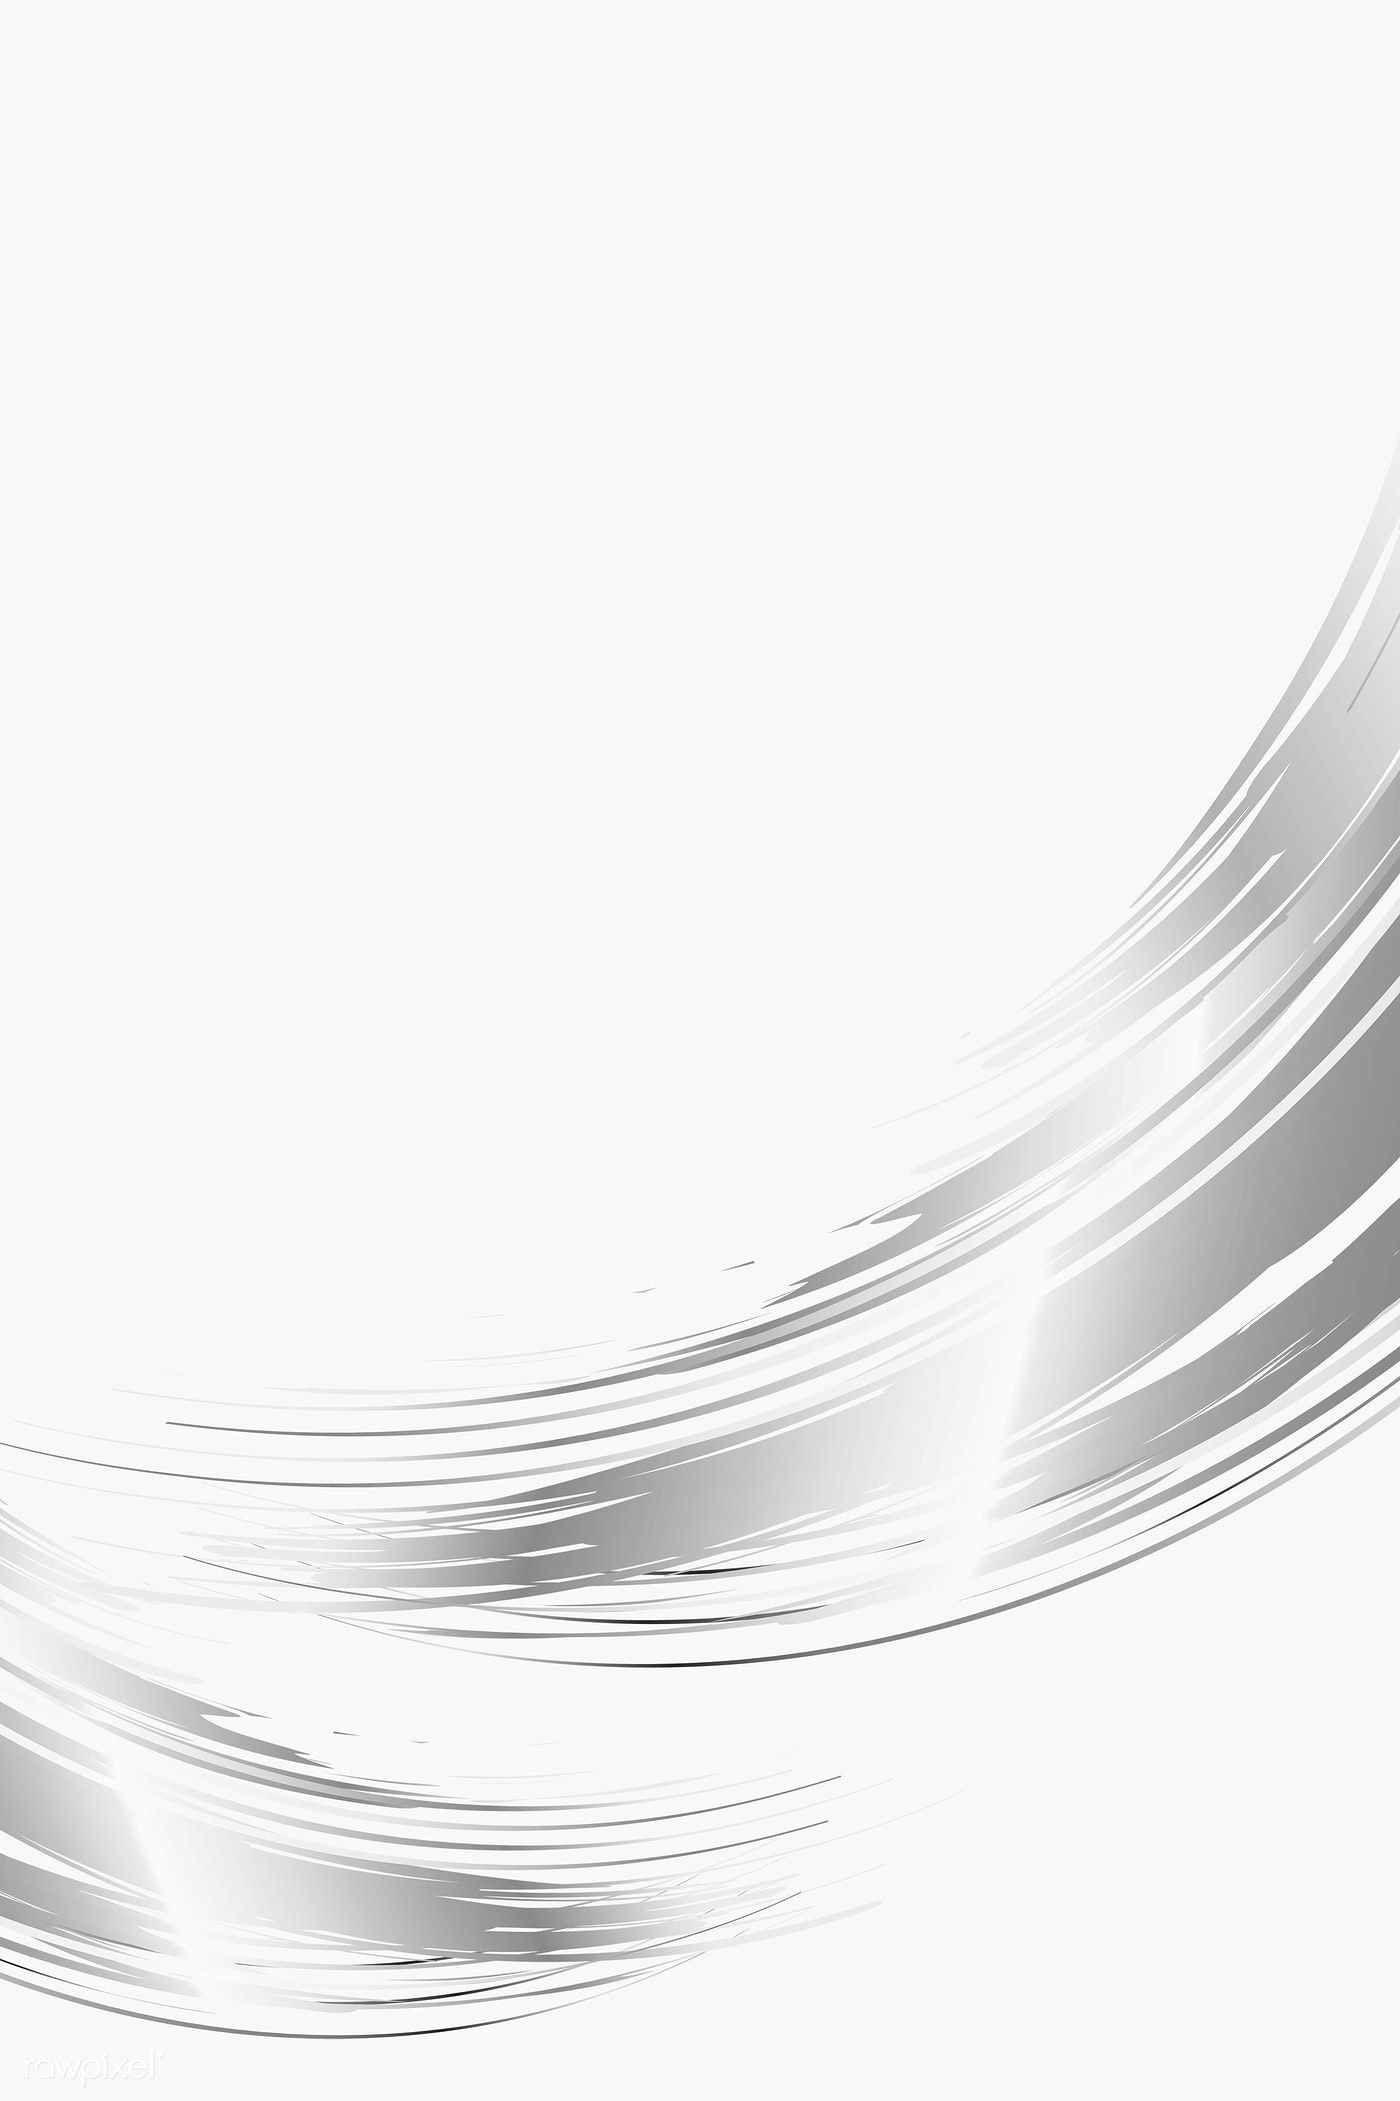 Gray Brush Stroke Design Element Free Image By Rawpixel Com Nunny Design Element Abstract Line Art Brush Strokes